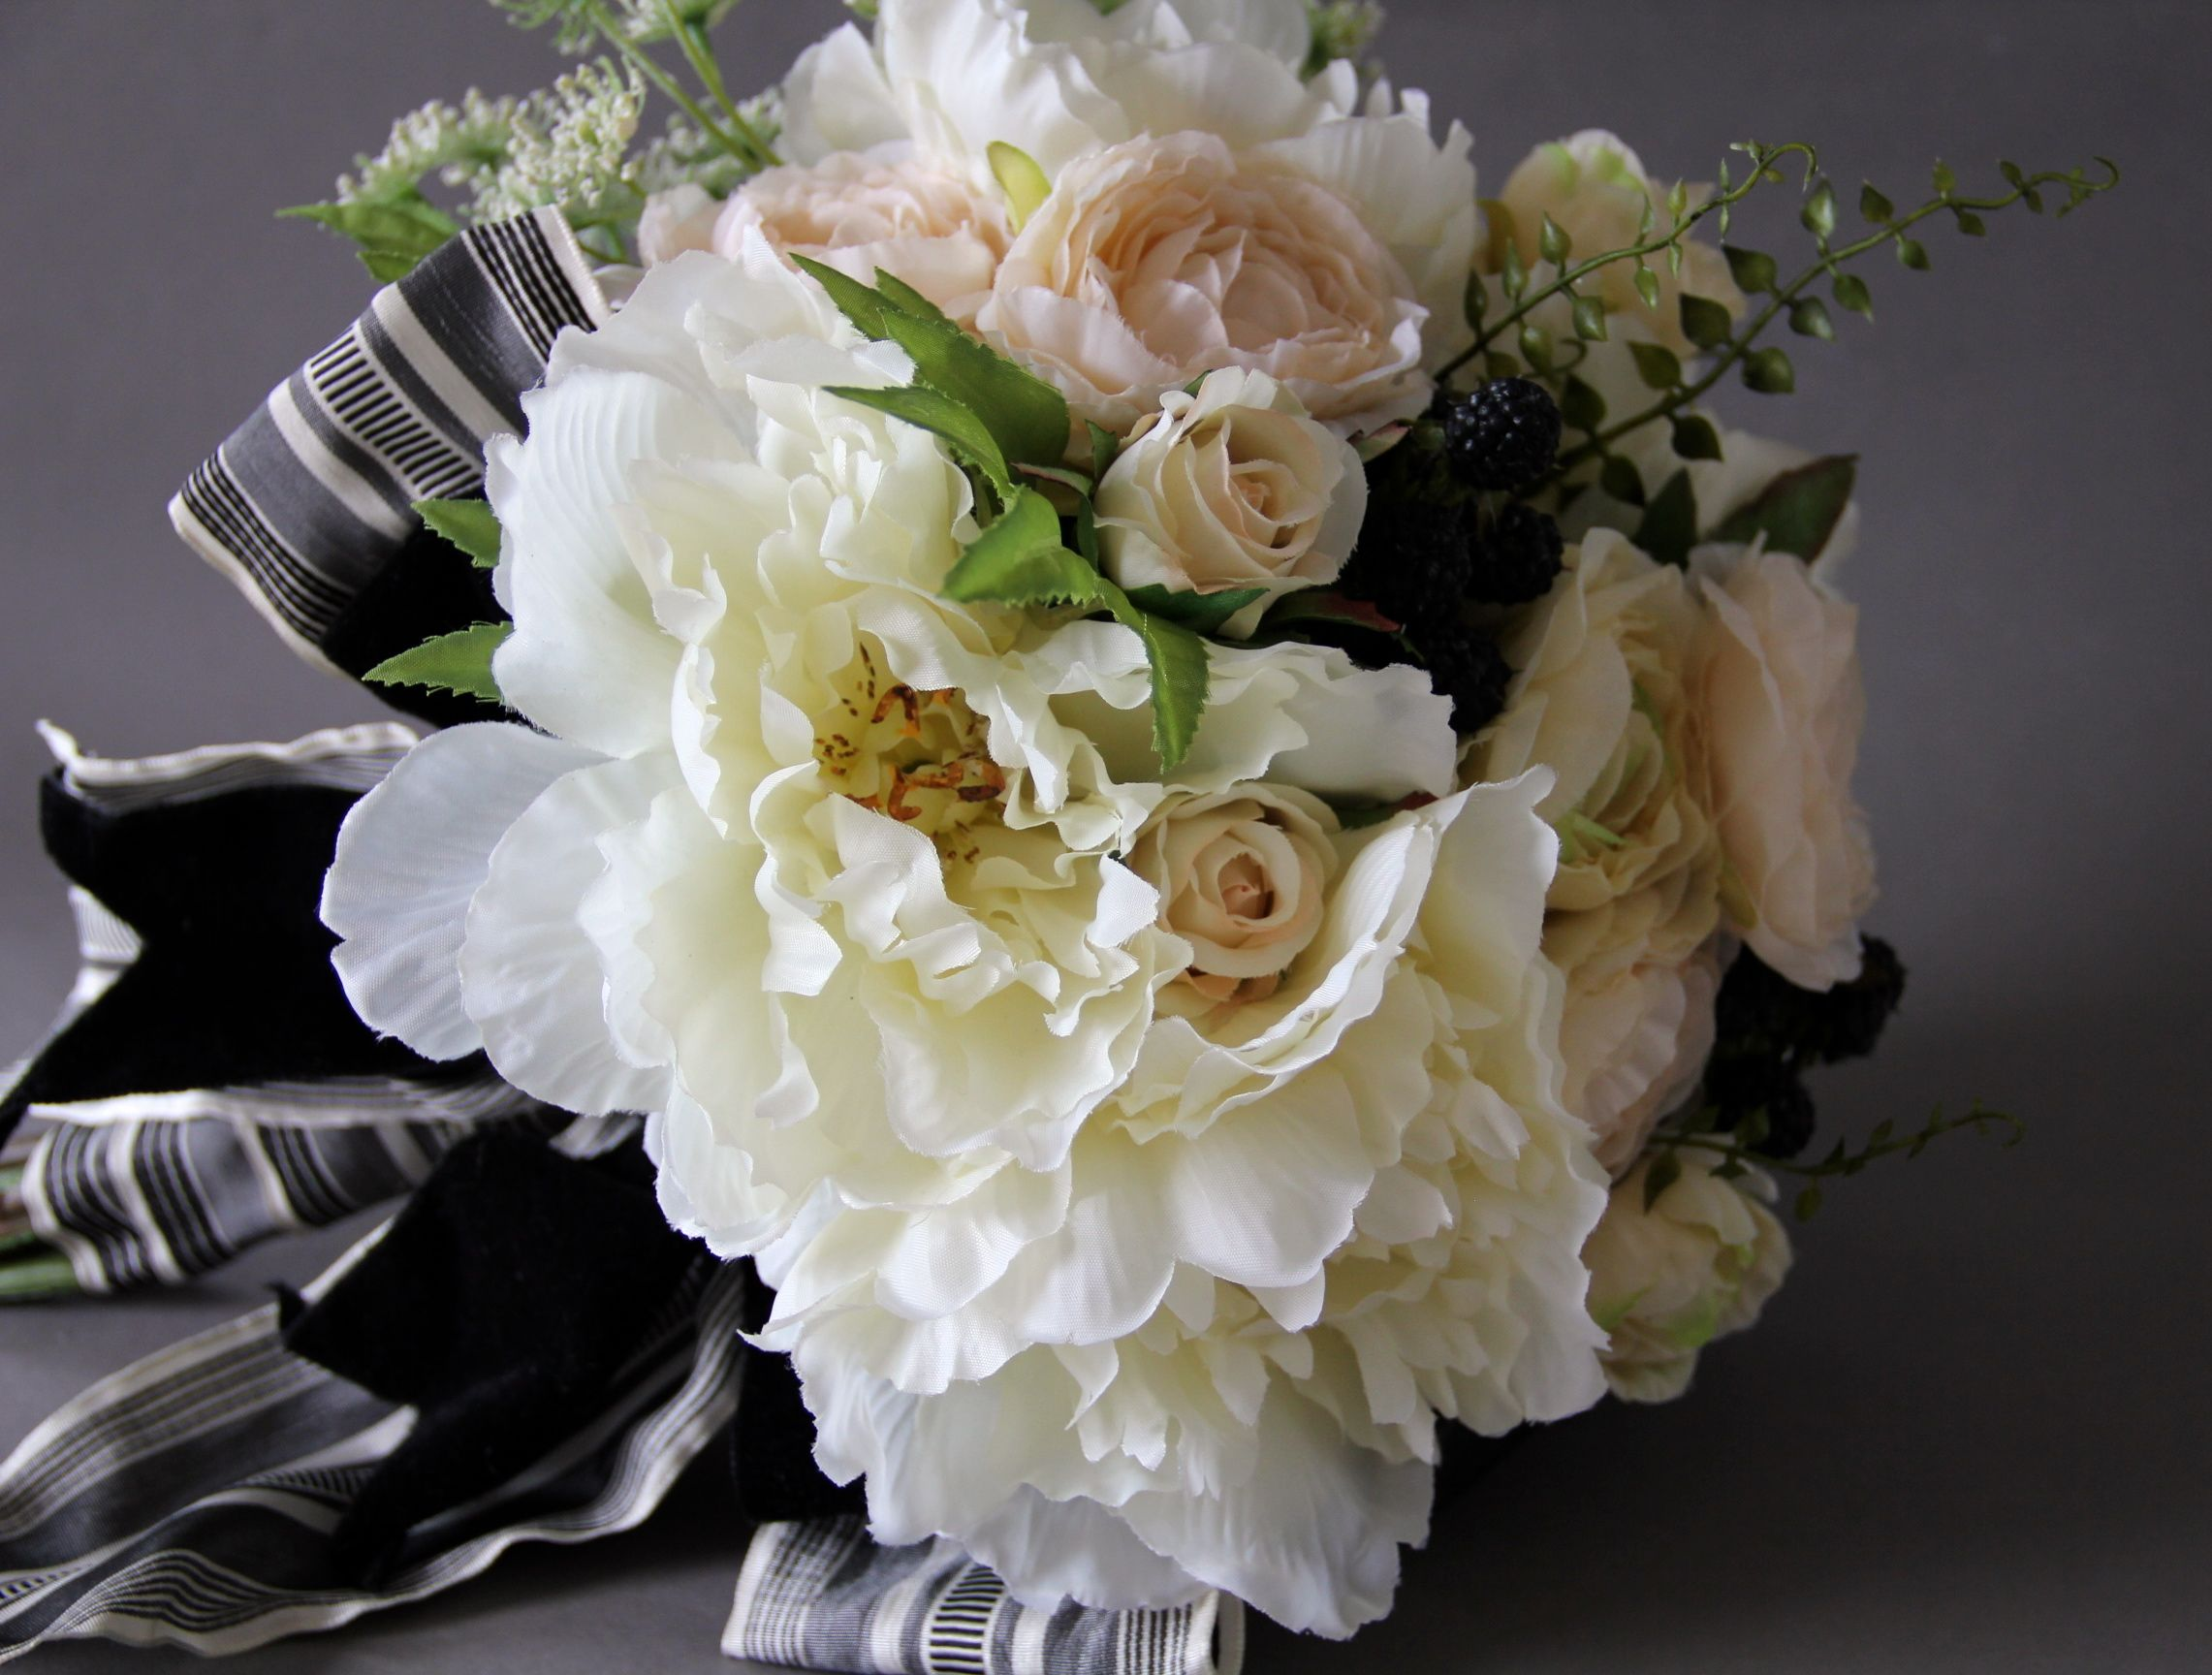 Artificial Silk Flower Wedding Bouquet White Peoniesdusty Pink And